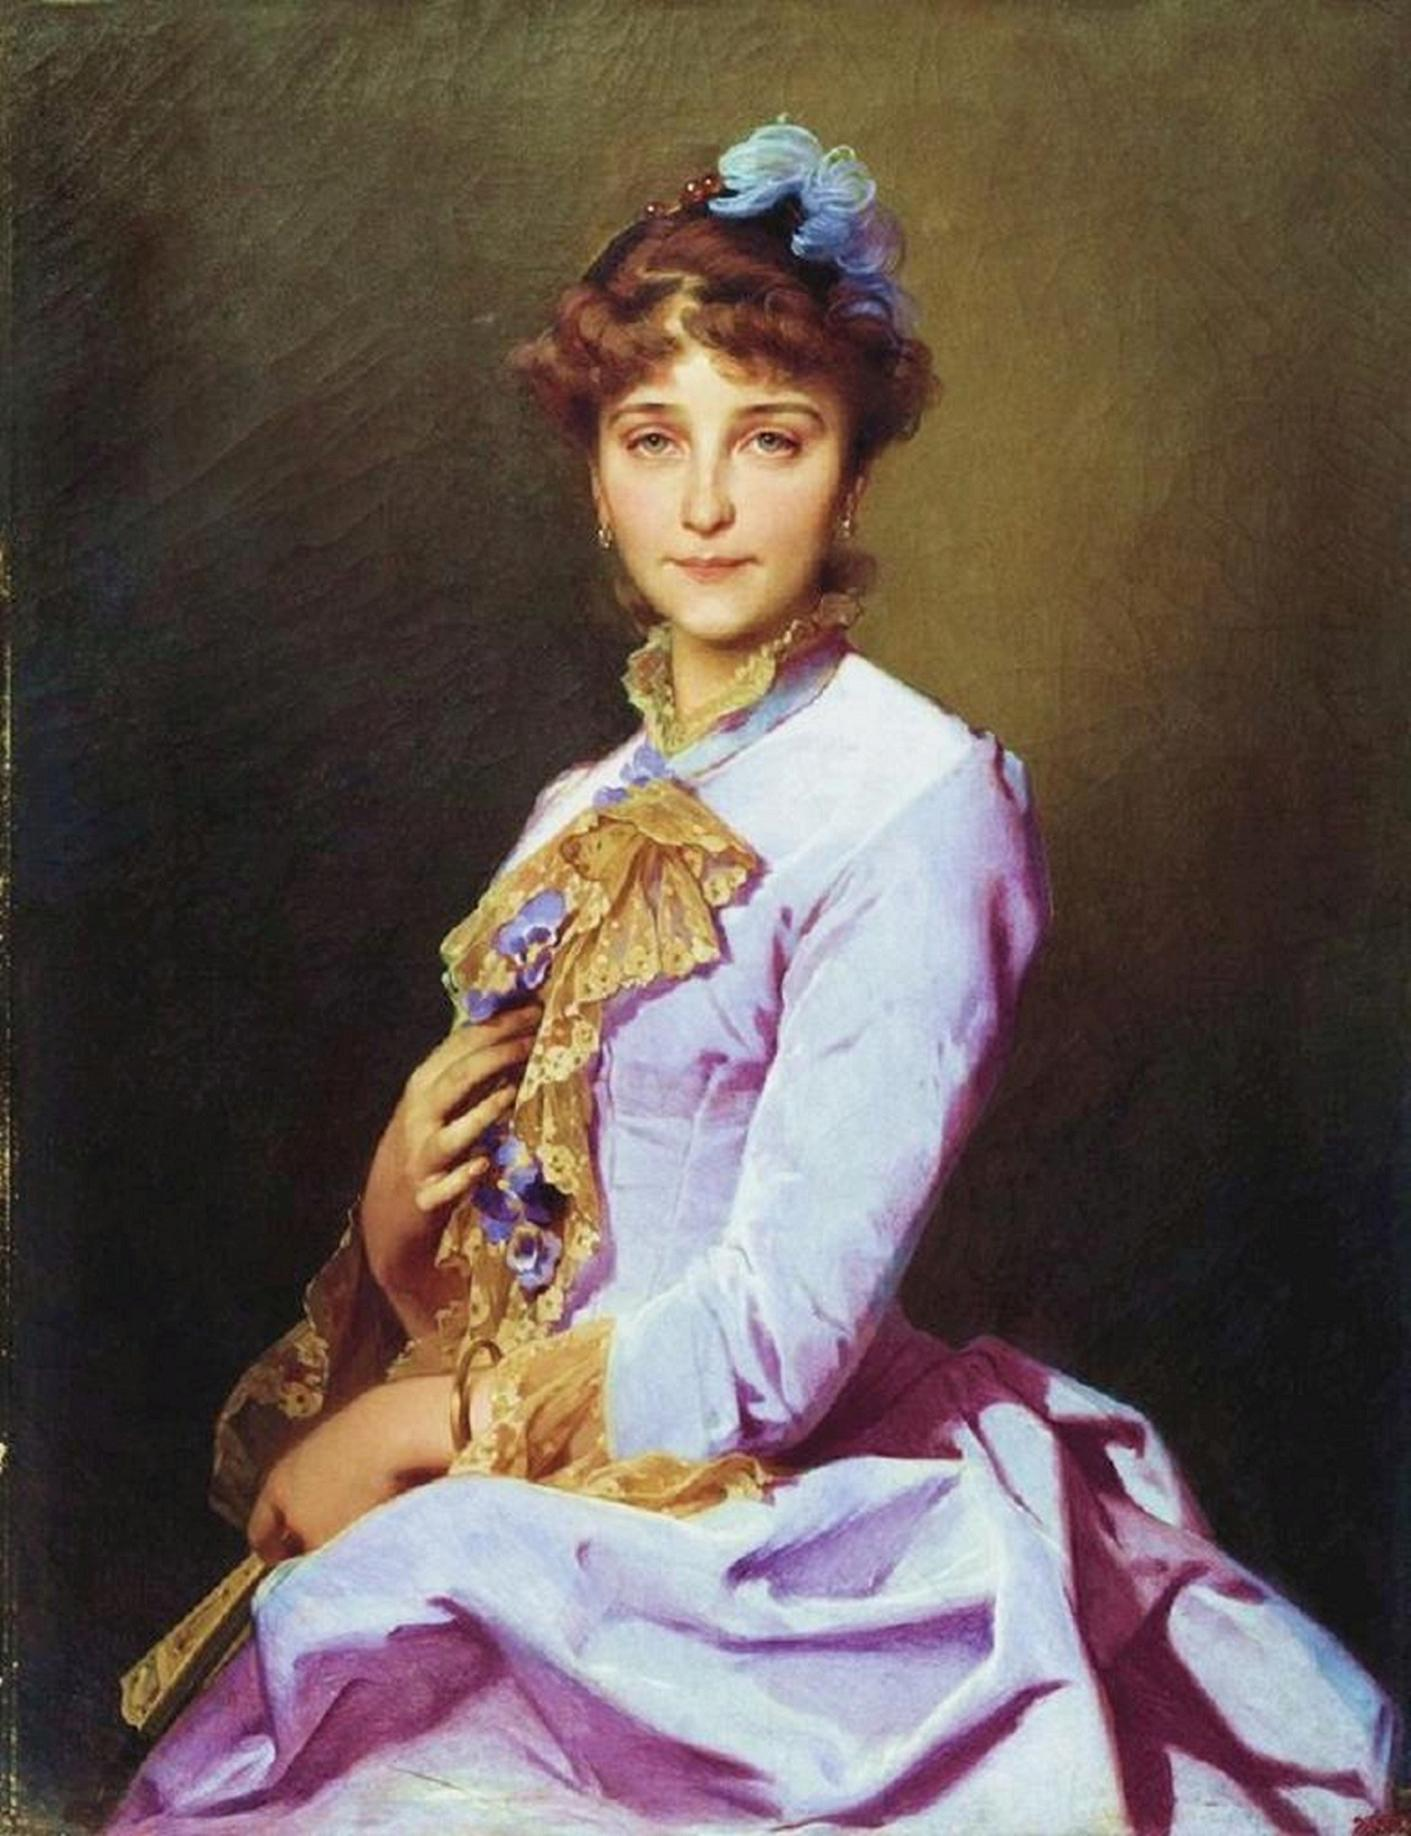 http://01varvara.files.wordpress.com/2008/11/ivan-makarov-a-portrait-of-a-woman-18851.jpg